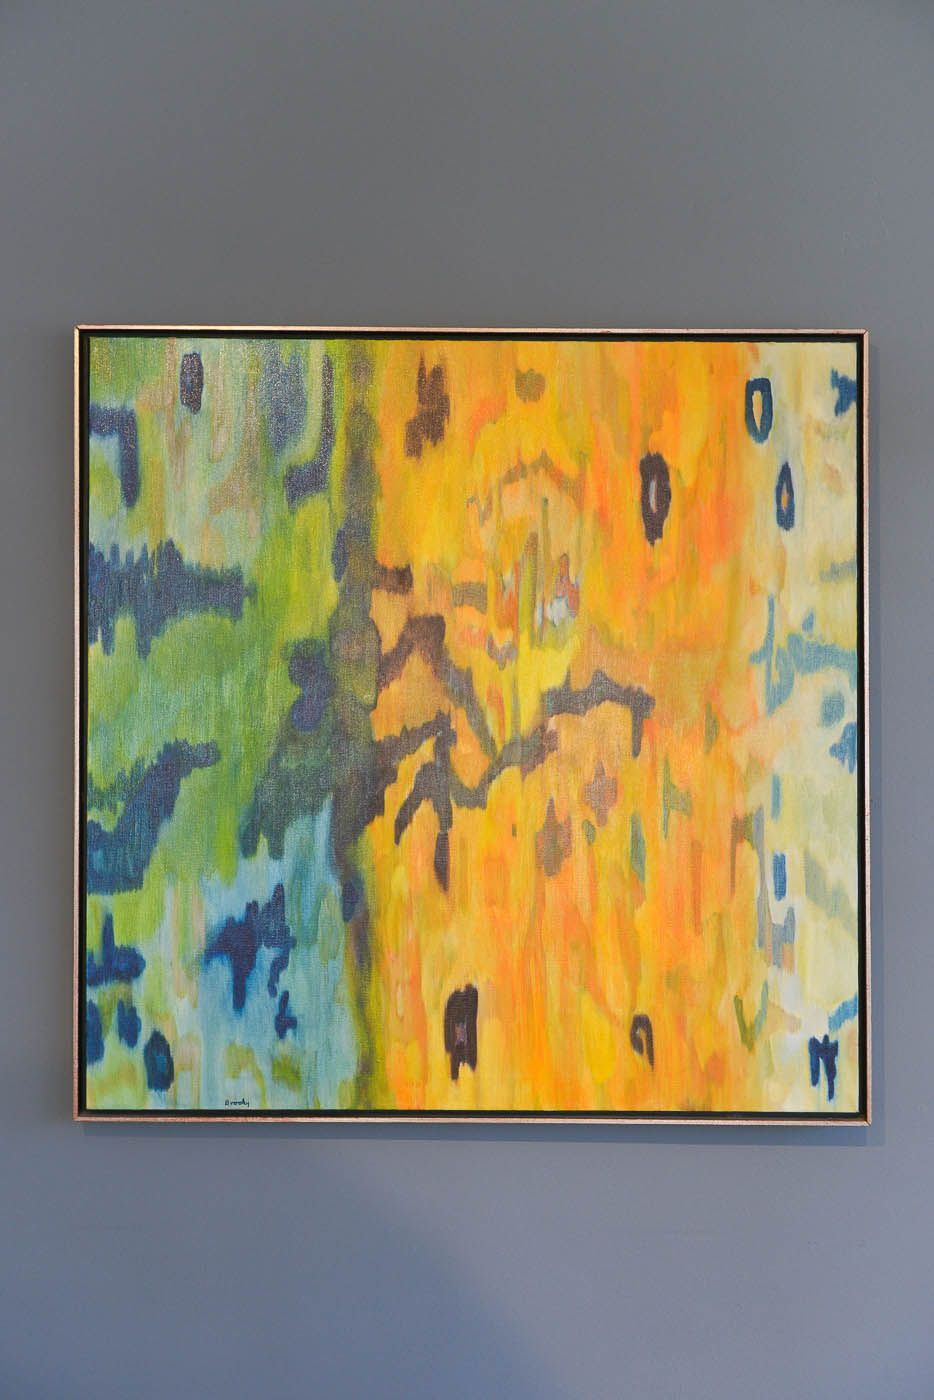 Original Vintage Oil on Canvas Abstract by artist Brooky Zajac ...